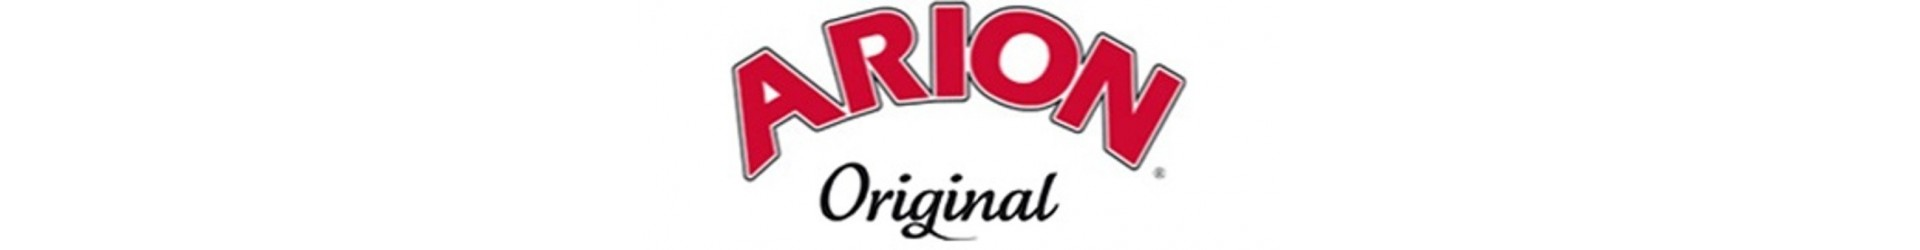 Arion Original